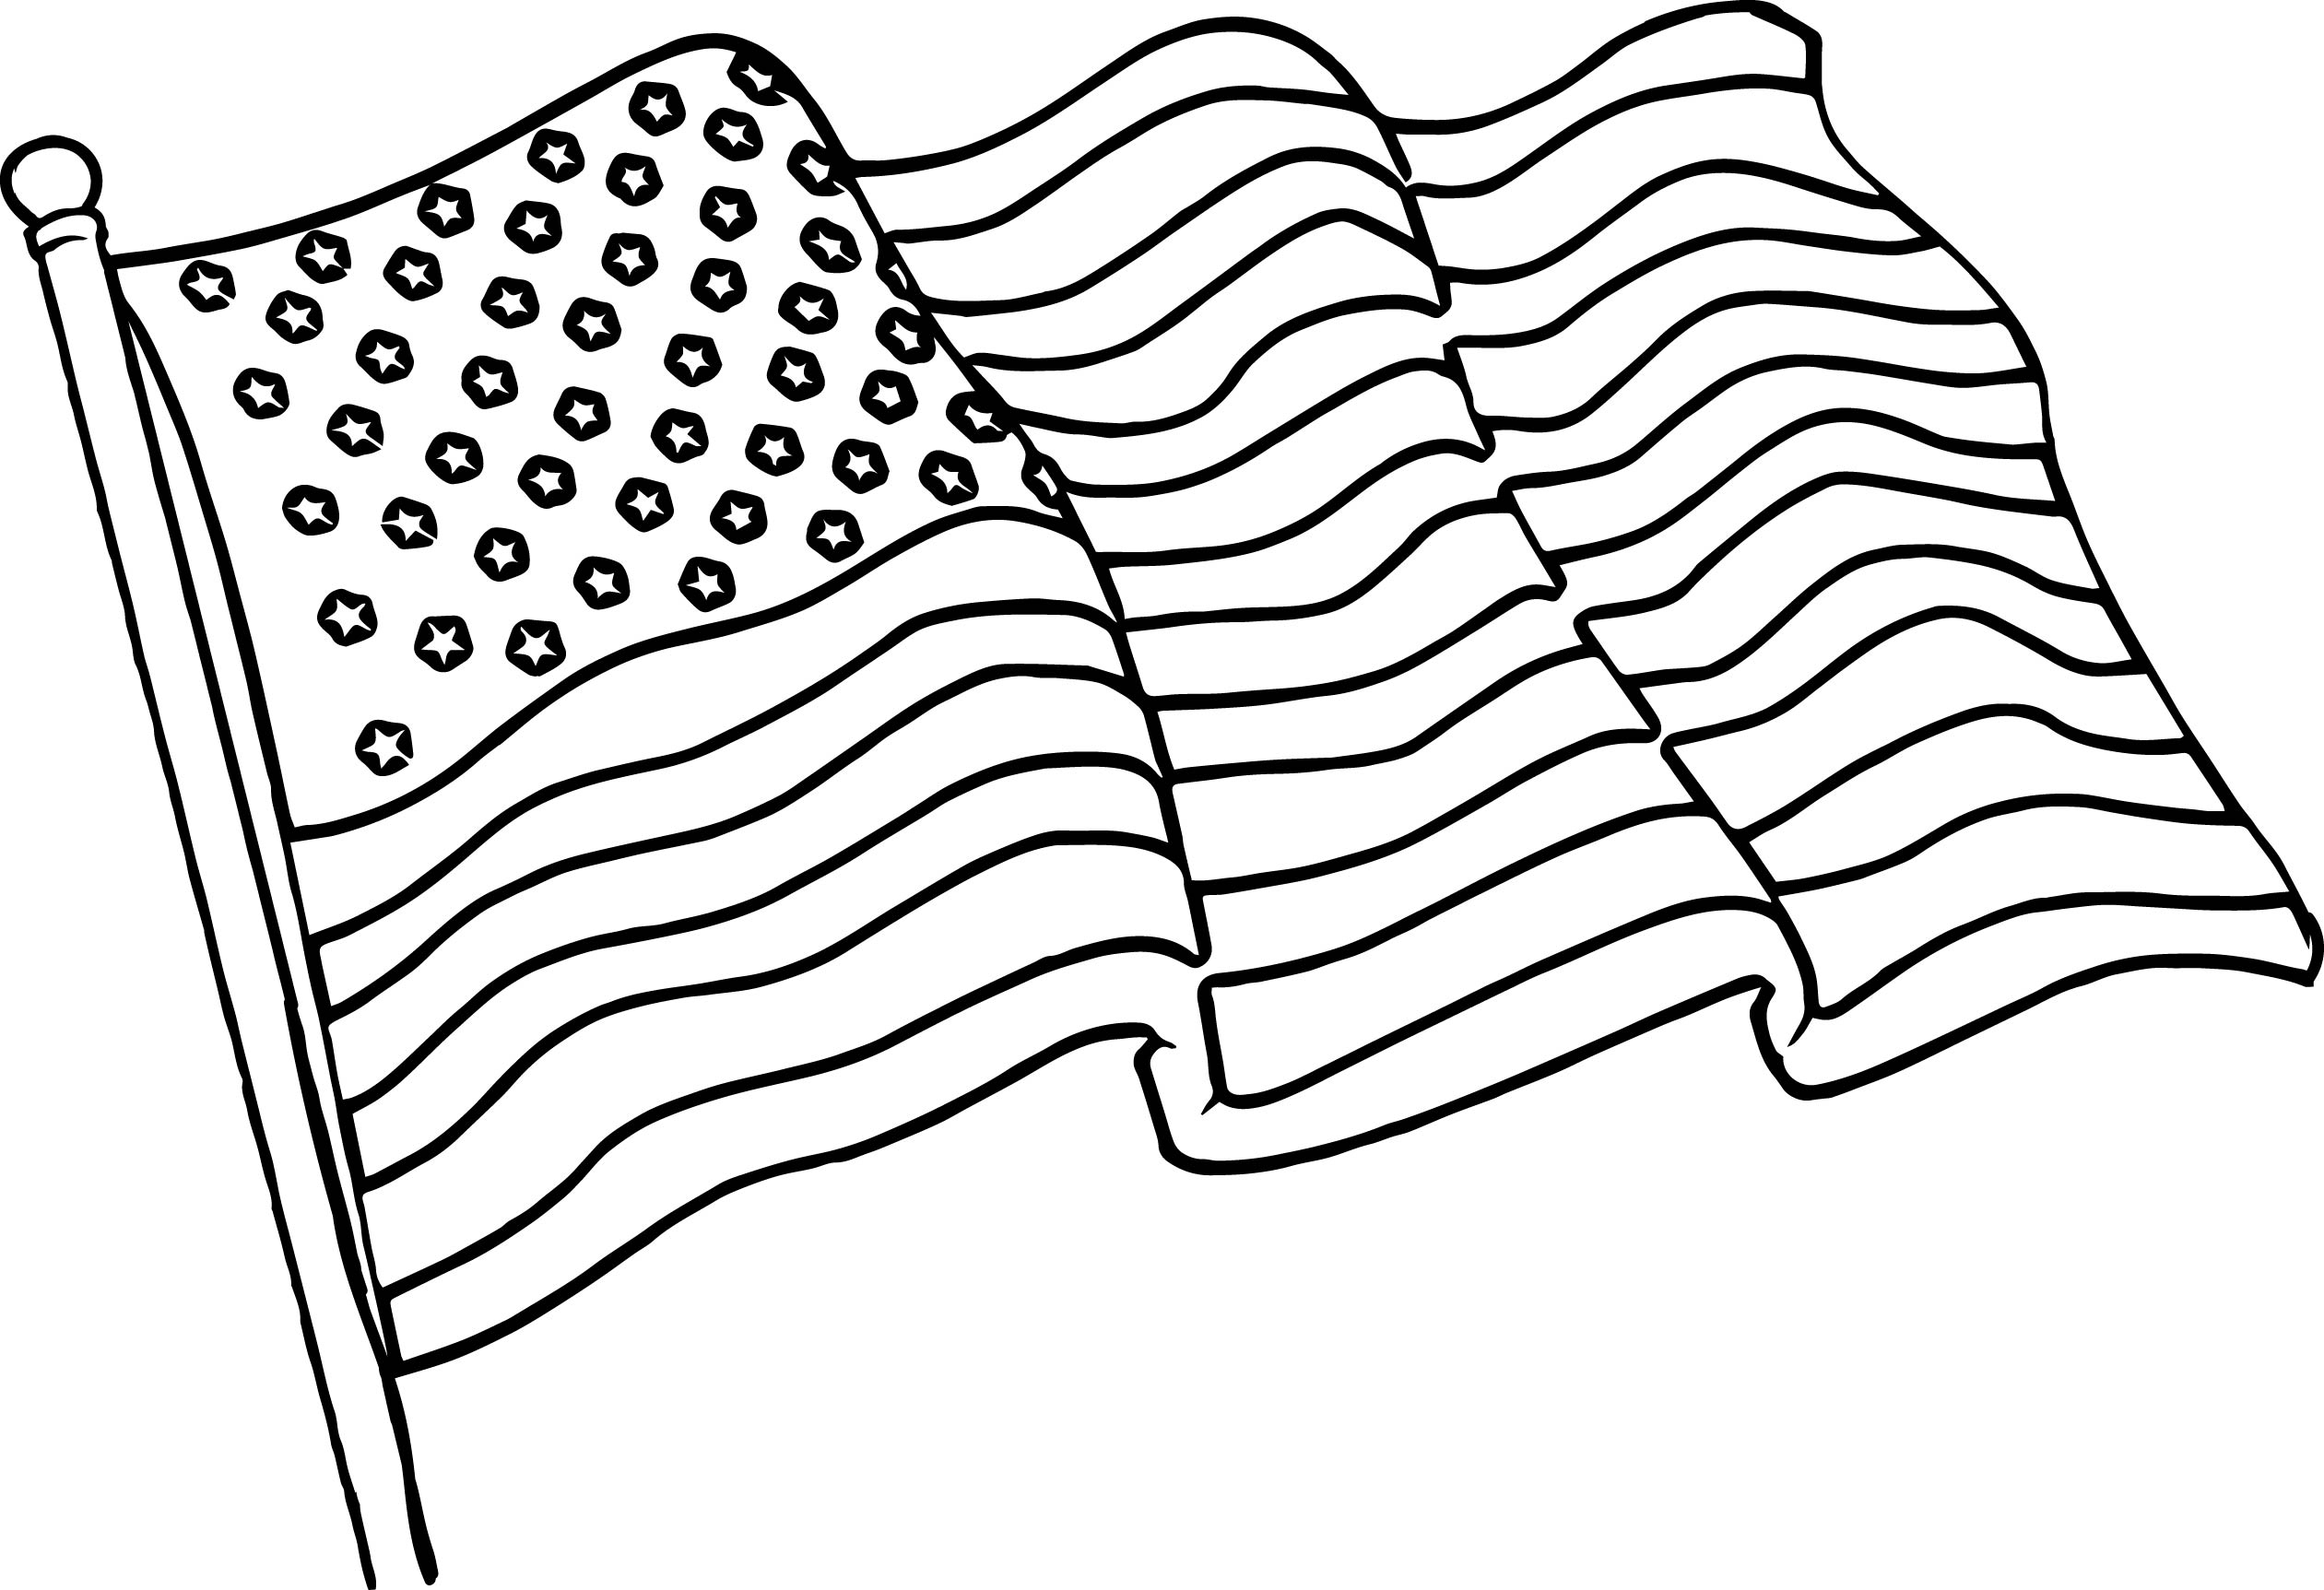 American Flag Coloring Pages Best Coloring Pages For Kids Colouring Pages Print